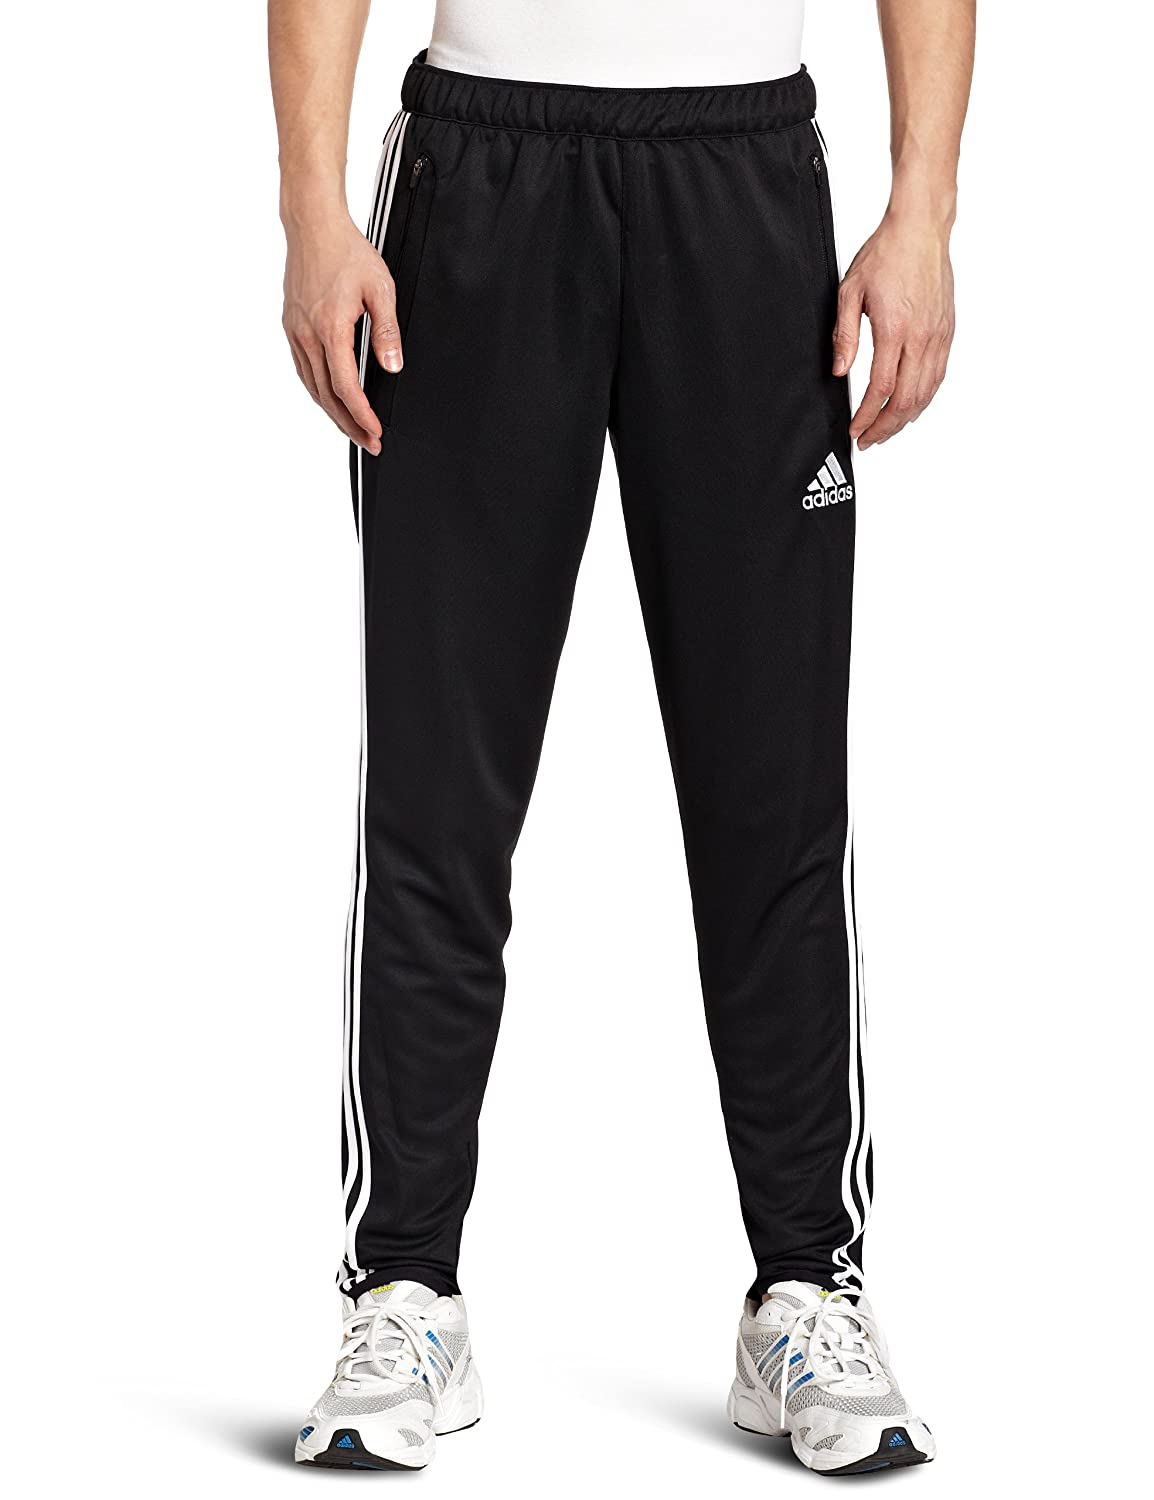 5f99bf85da0 adidas Tiro13 Men's Tracksuit Bottoms black / white Size:XXL: Amazon.co.uk:  Sports & Outdoors